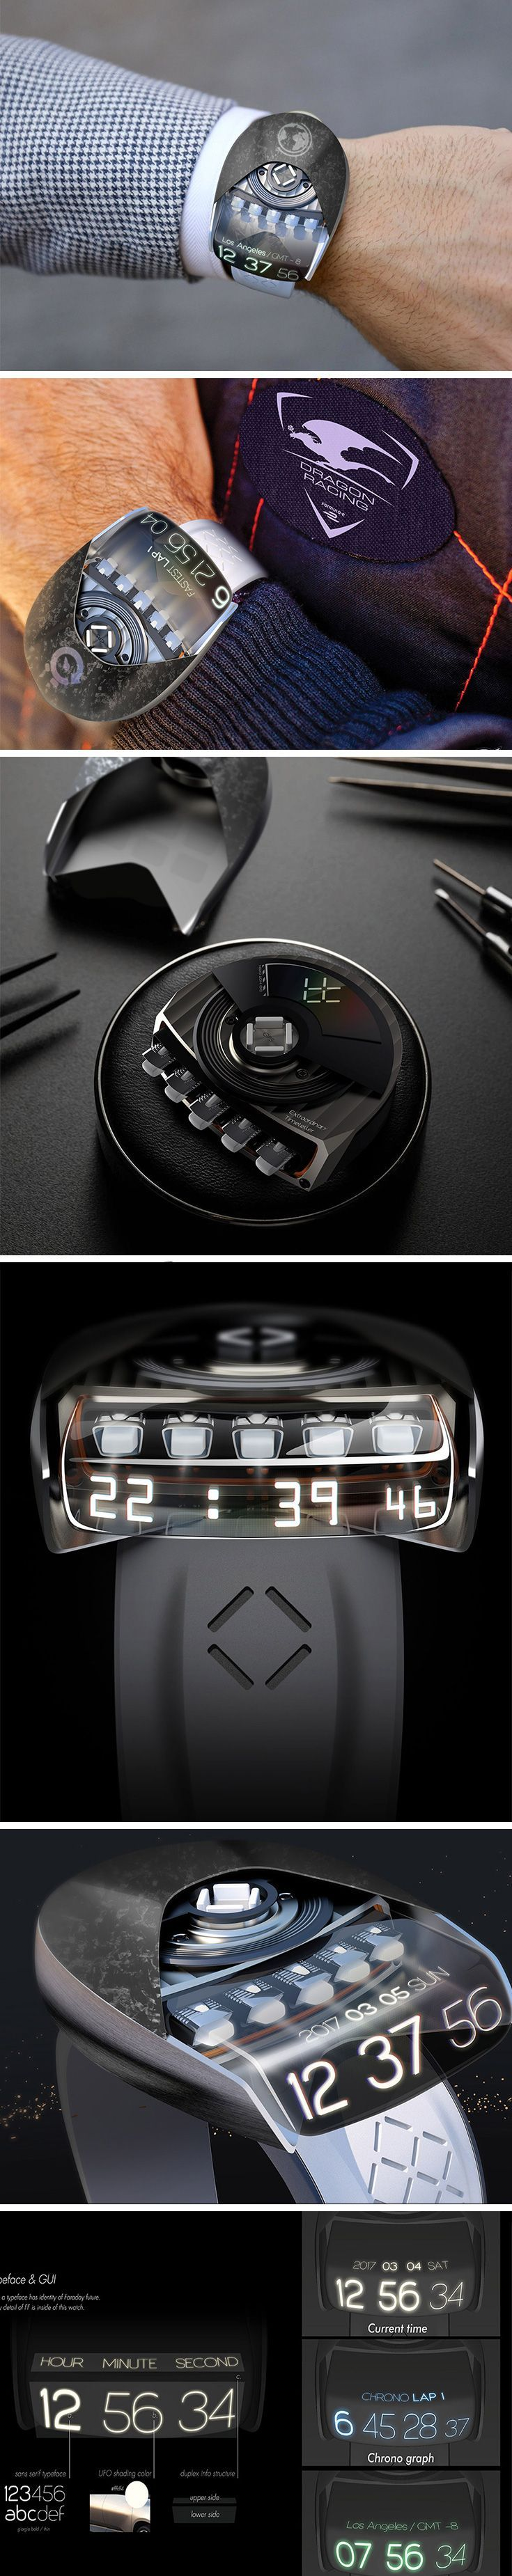 While we play the waiting game for Faraday Future's FF 91 release, we can count the hours and minutes on this Faraday Future watch! Called the Extraordinary Timeteller, this conceptual timepiece puts a twist on telling the time.